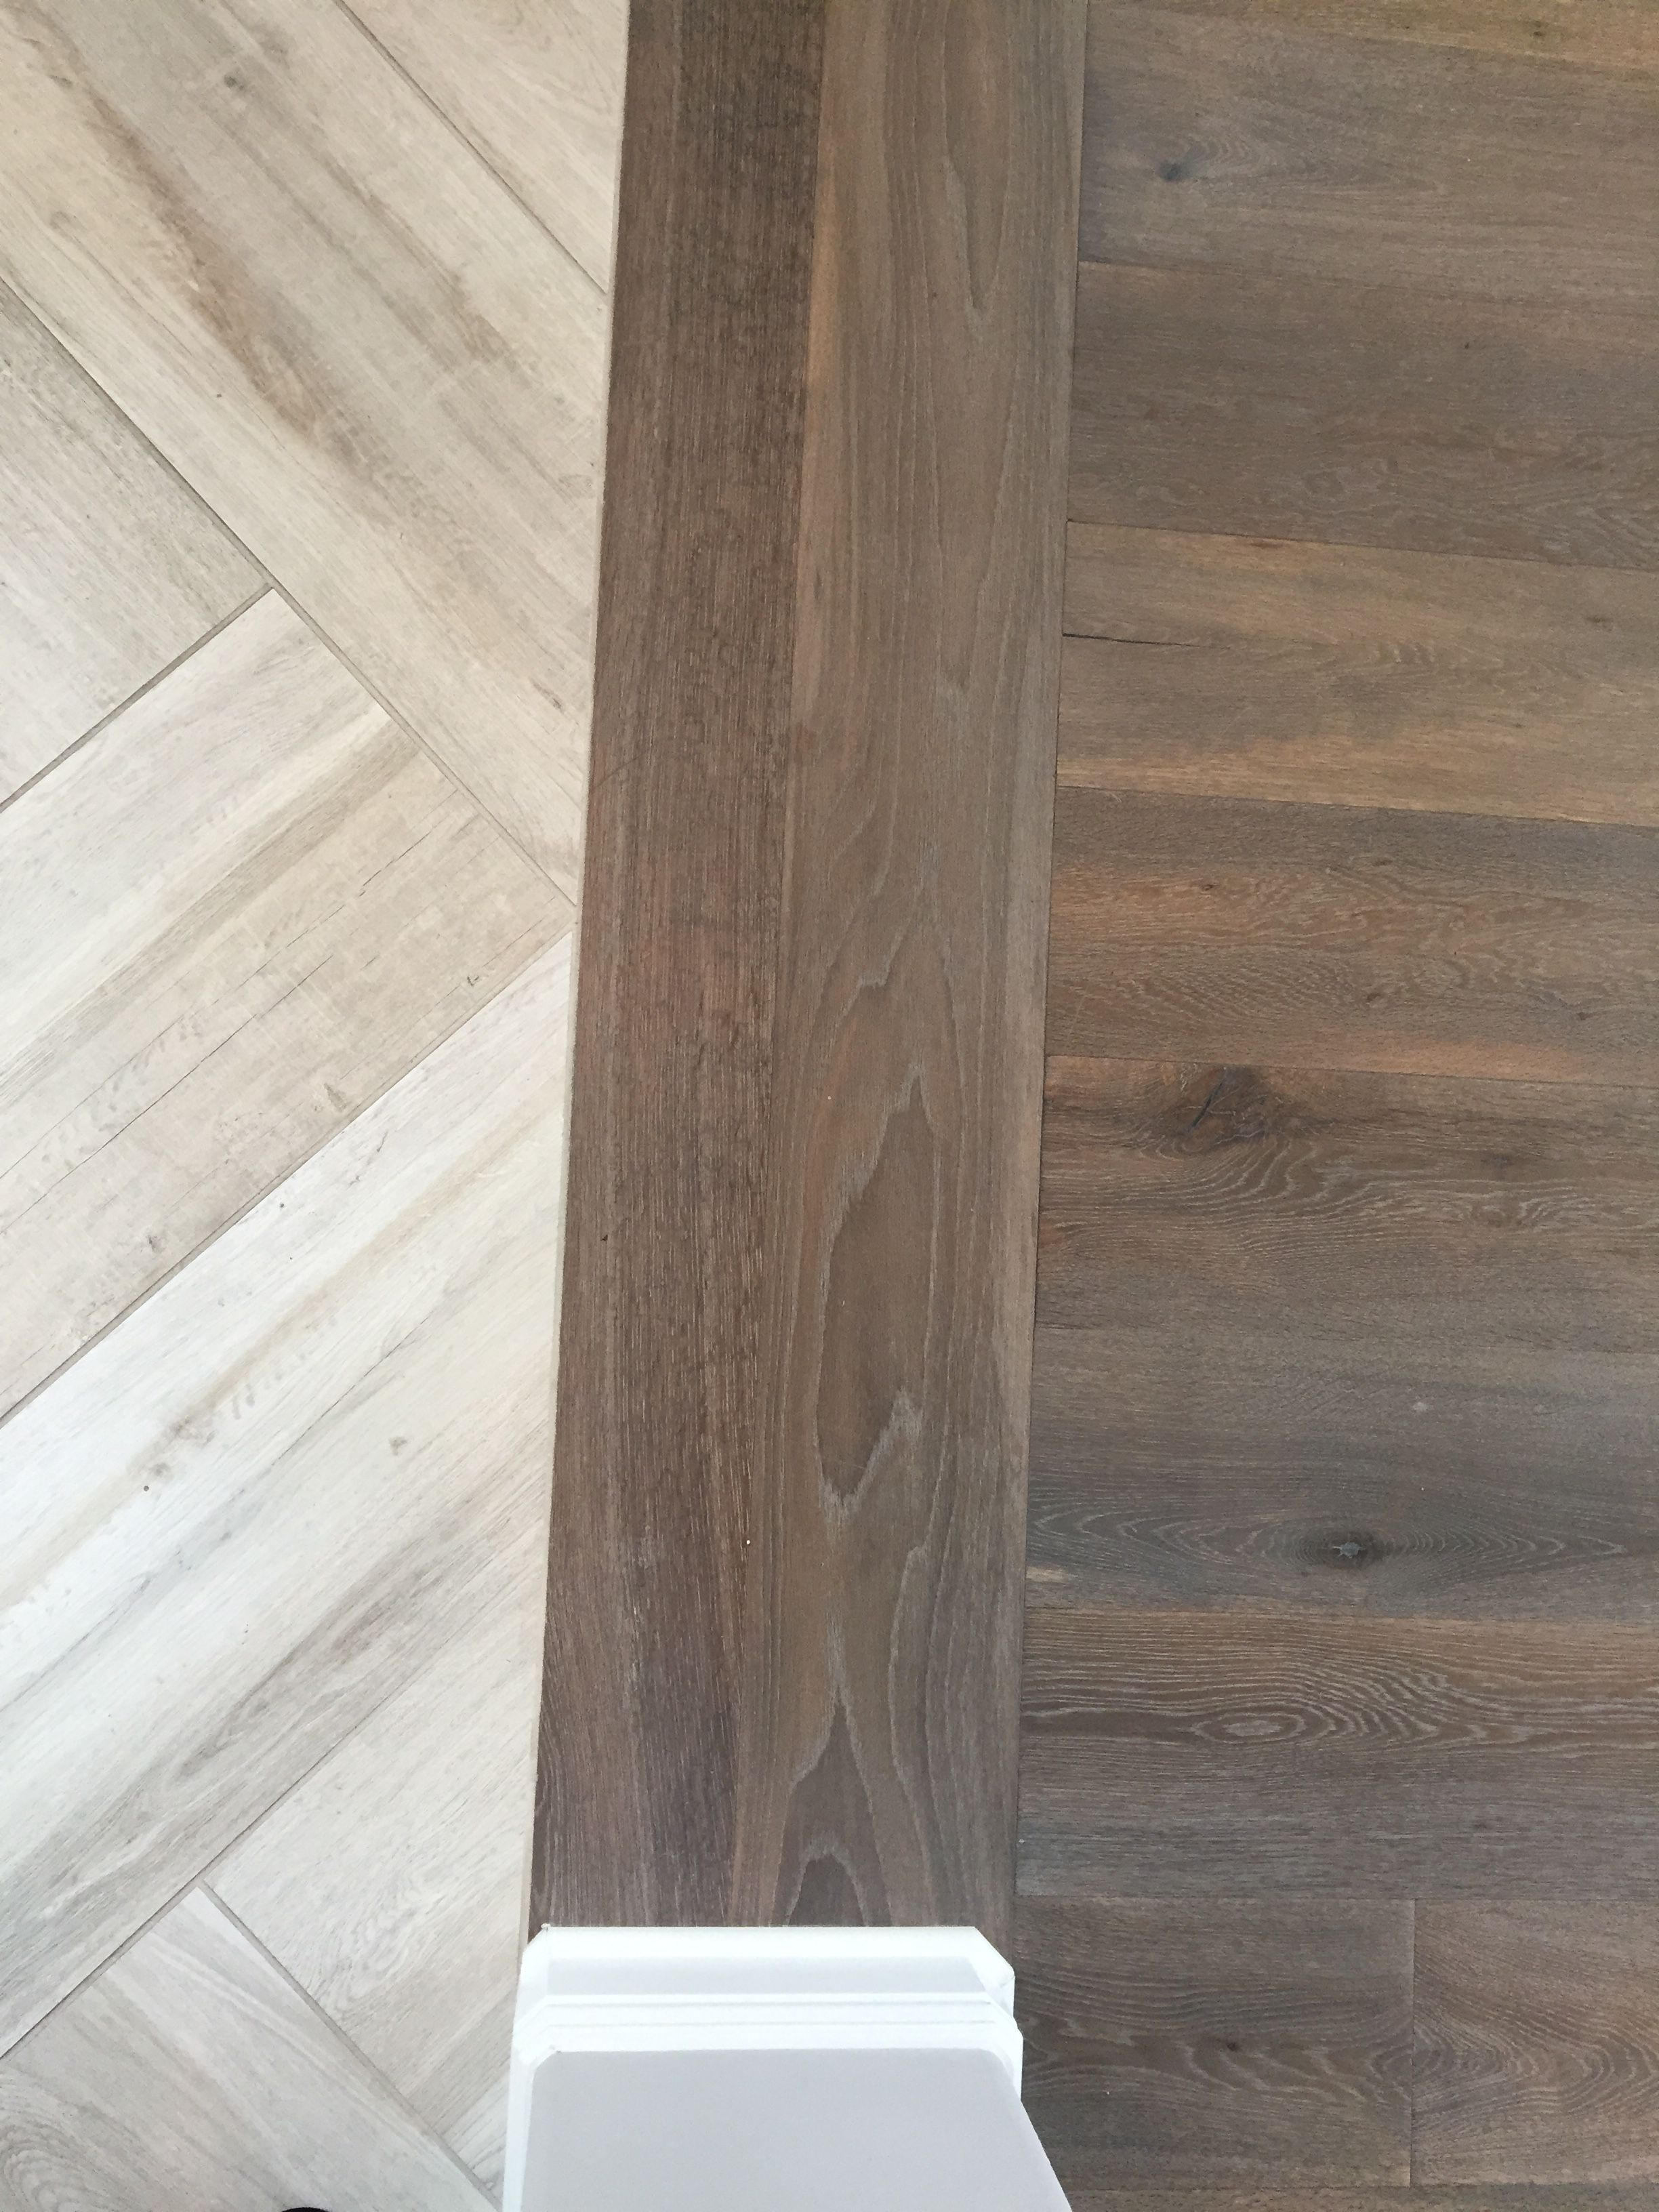 Floor transition laminate to herringbone tile pattern for Laminate floor coverings for kitchens